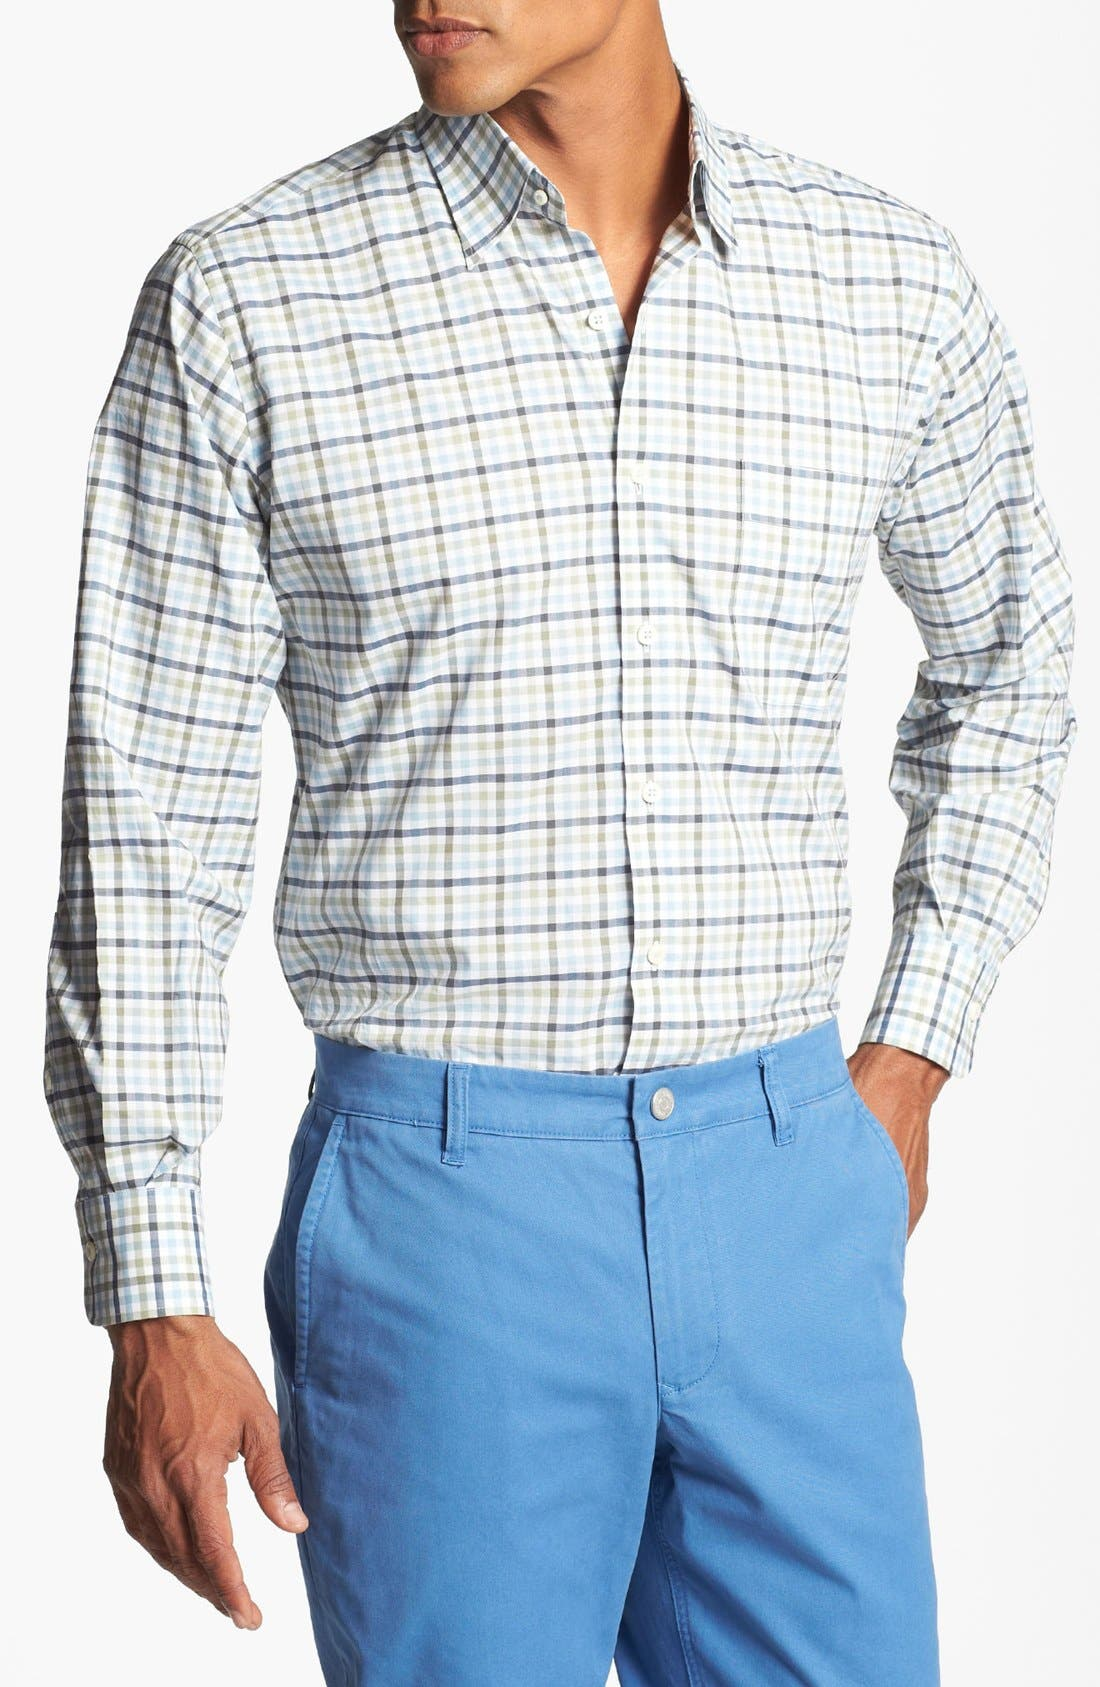 Alternate Image 1 Selected - Peter Millar Check Sport Shirt (Tall)